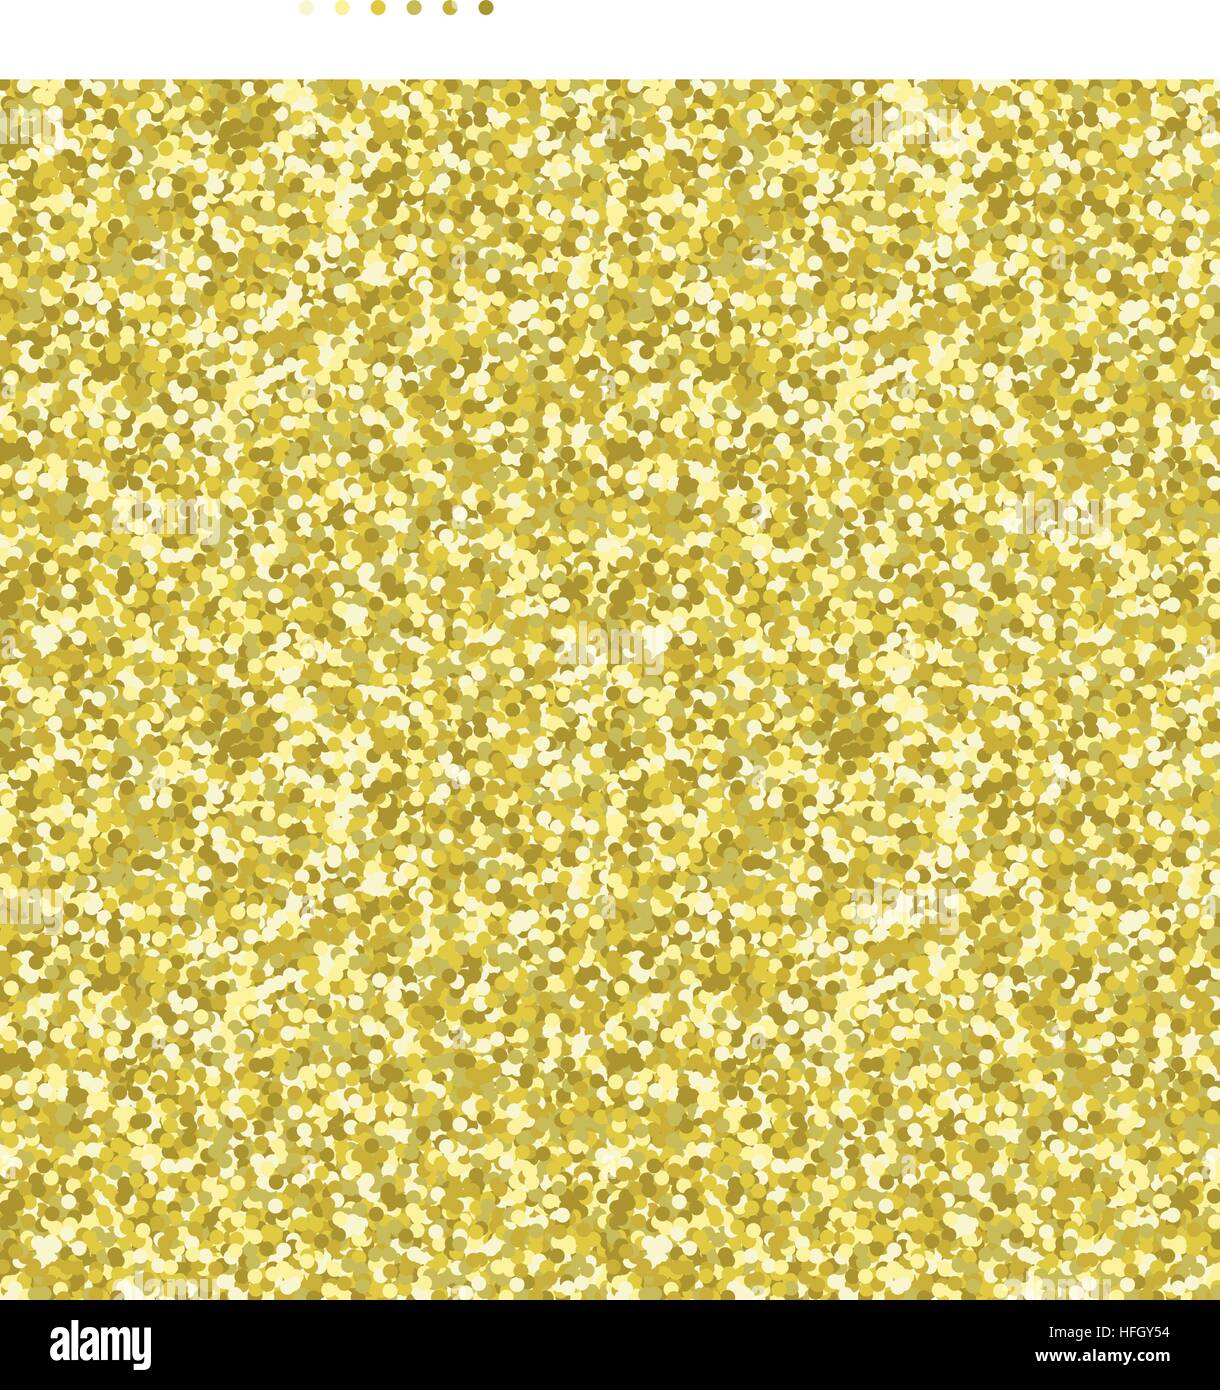 Glitter Gold: Gold Glitter Background Stock Photos & Gold Glitter